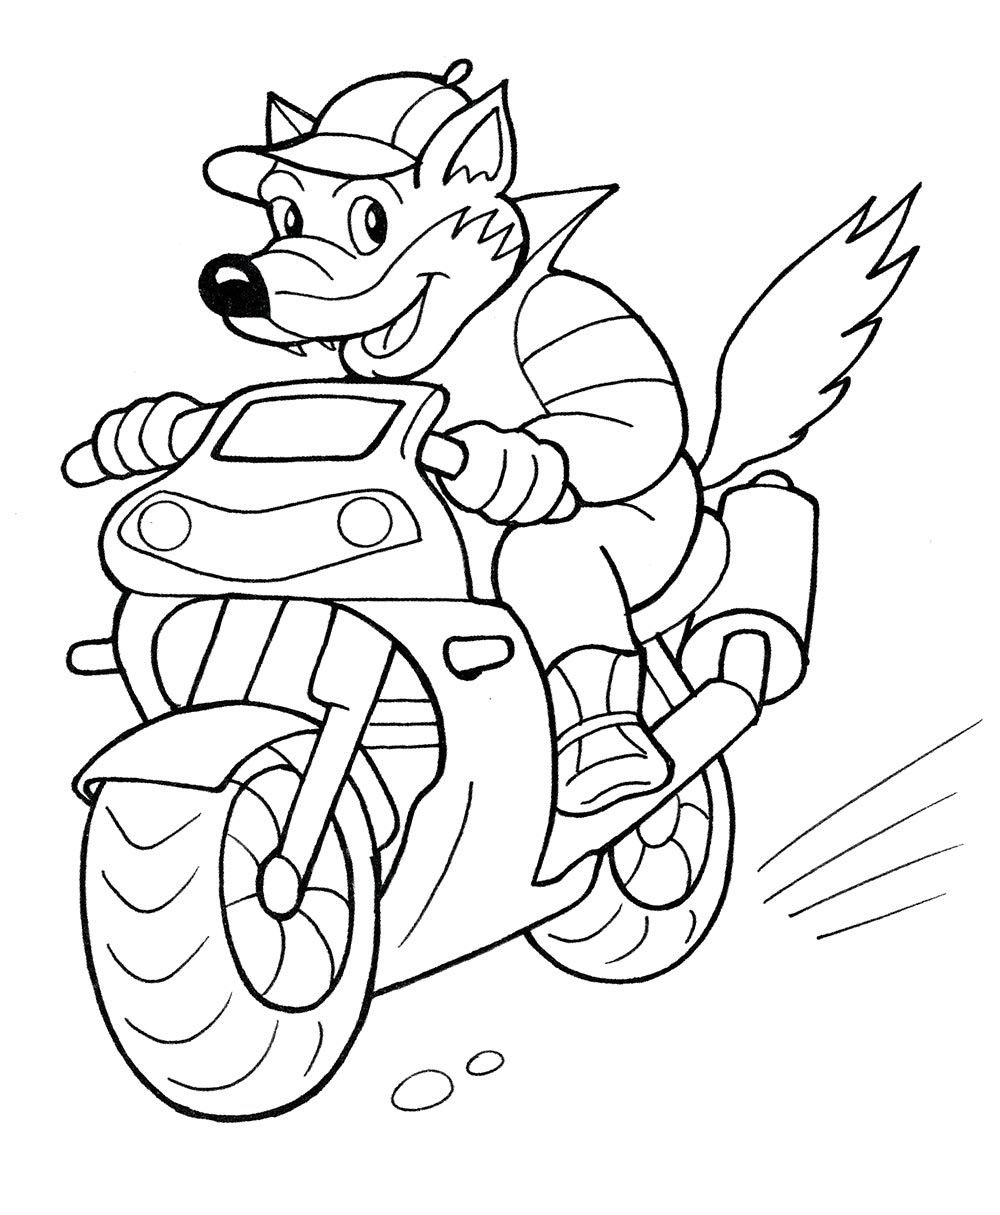 Coloring pages for children 7-8 years to download and